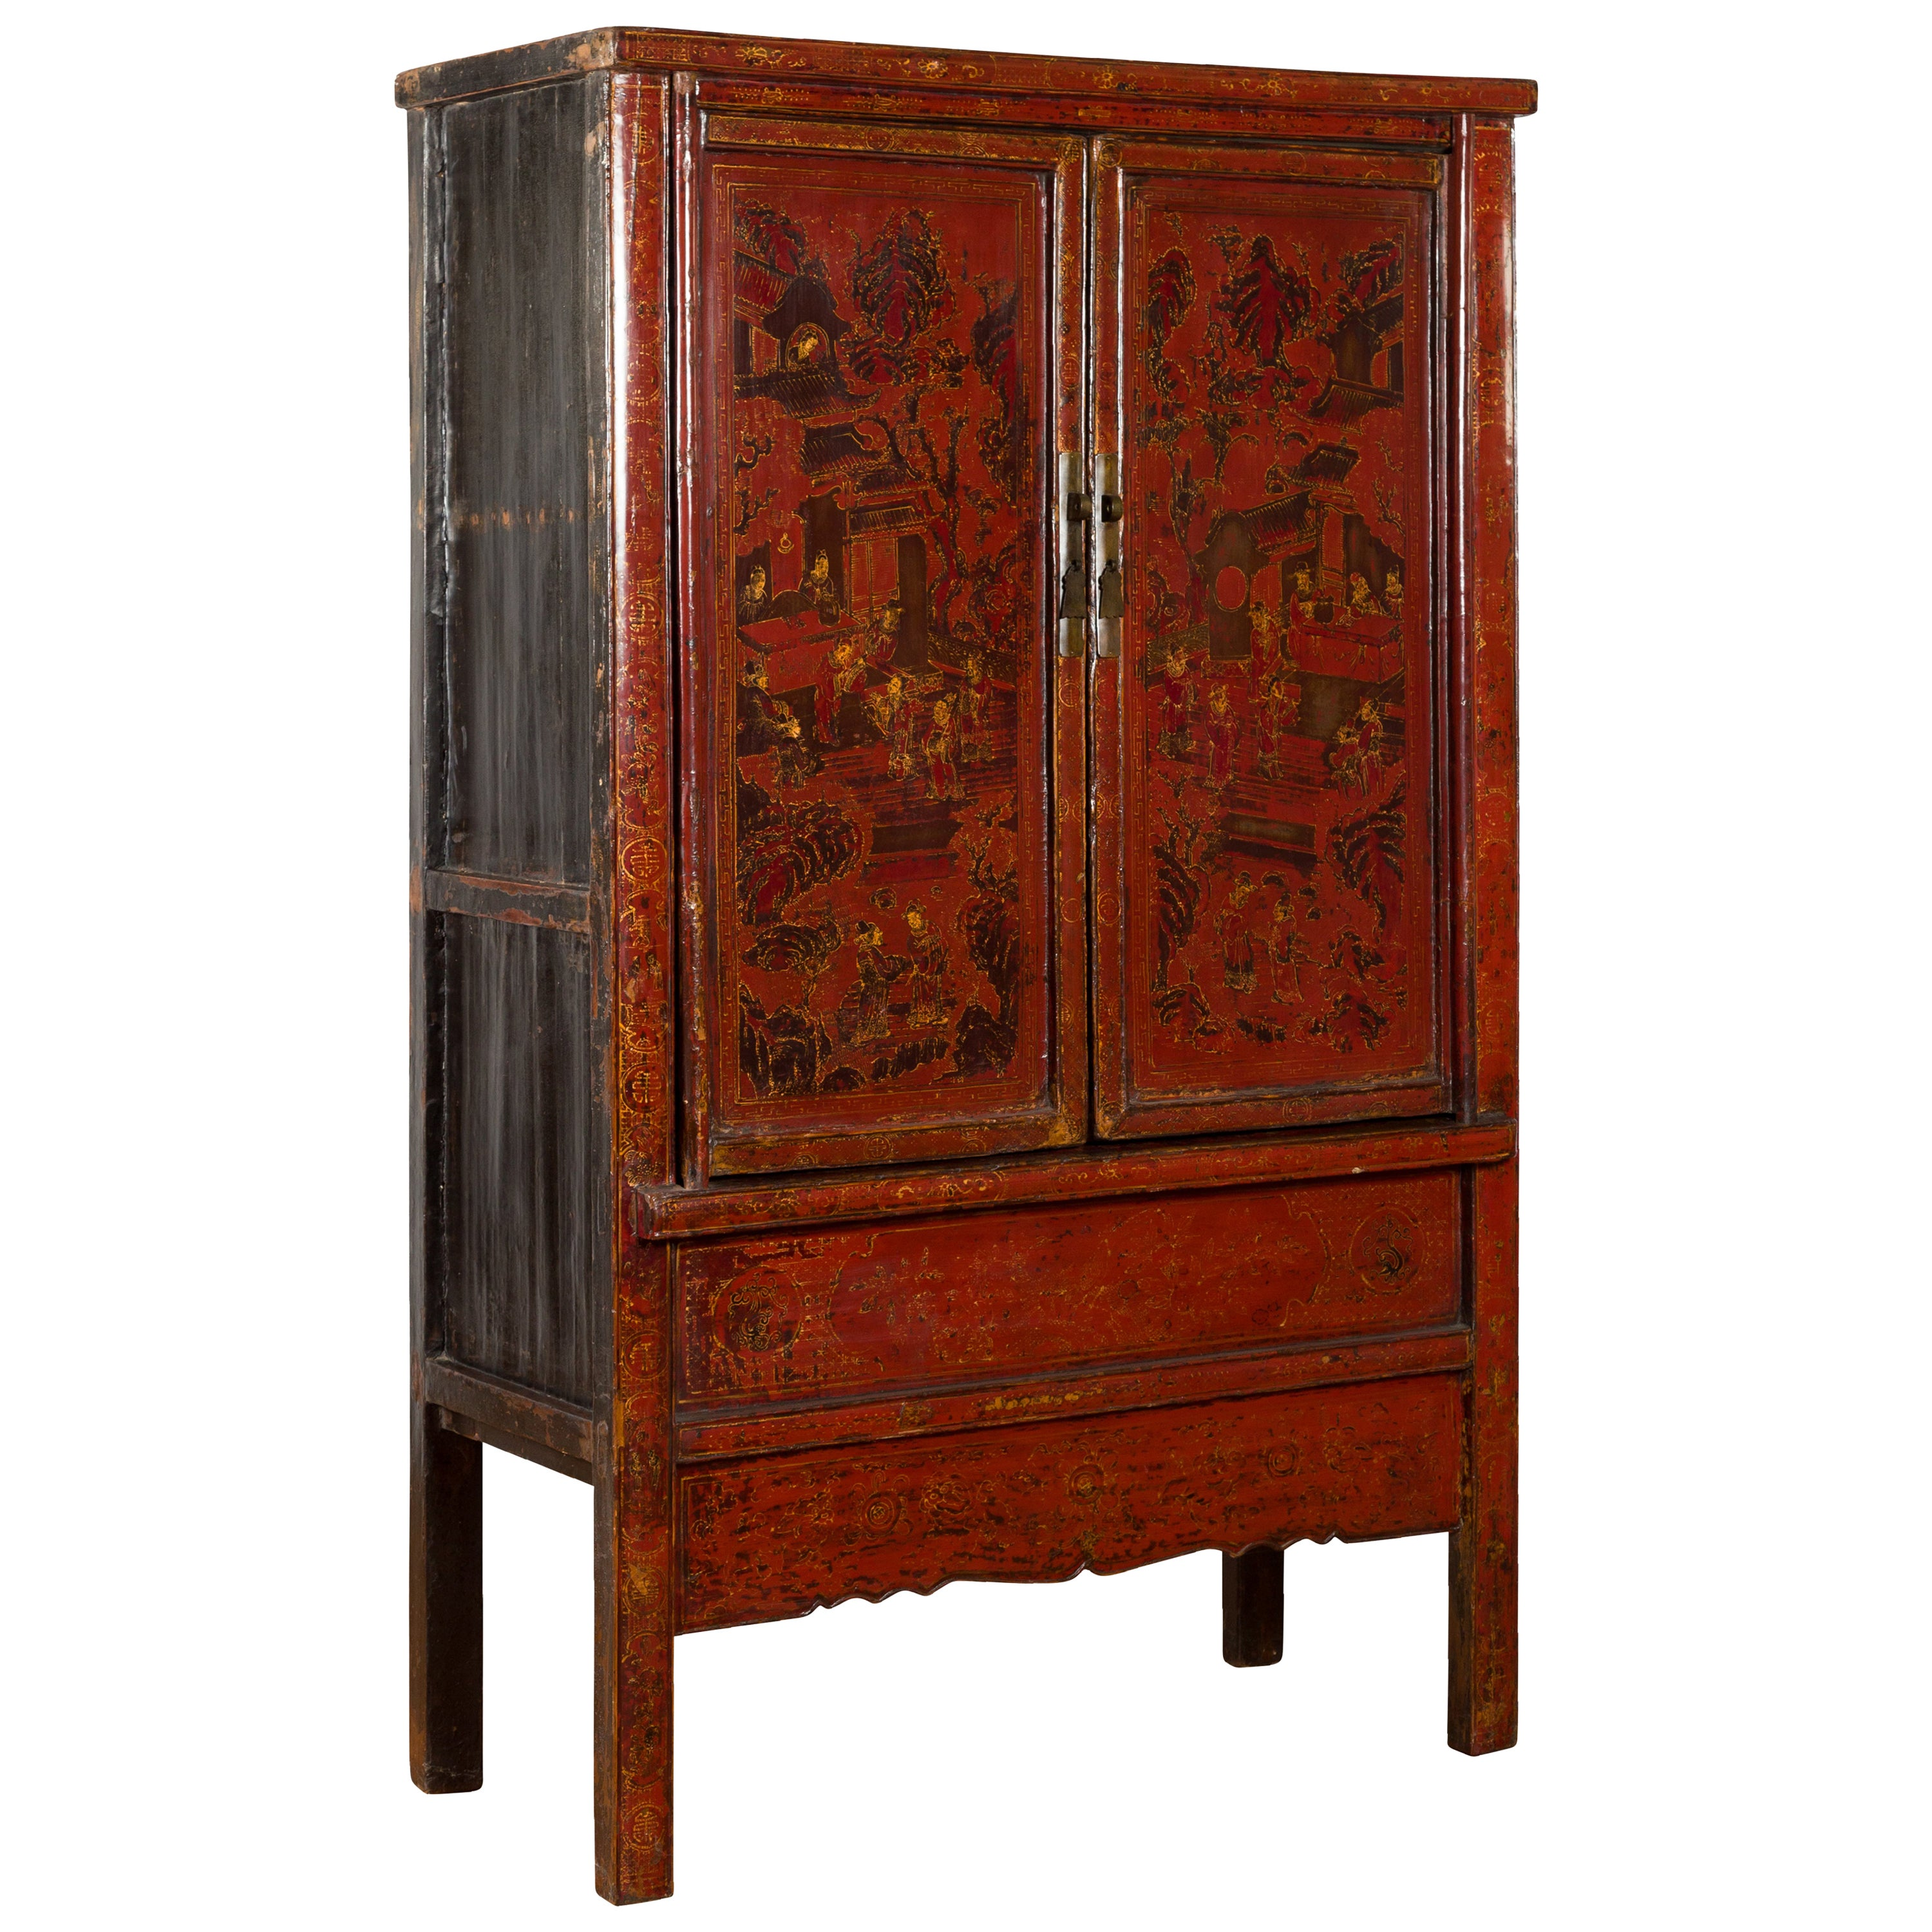 Chinese Qing Dynasty 19th Century Red Cabinet with Hand Painted Chinoiseries